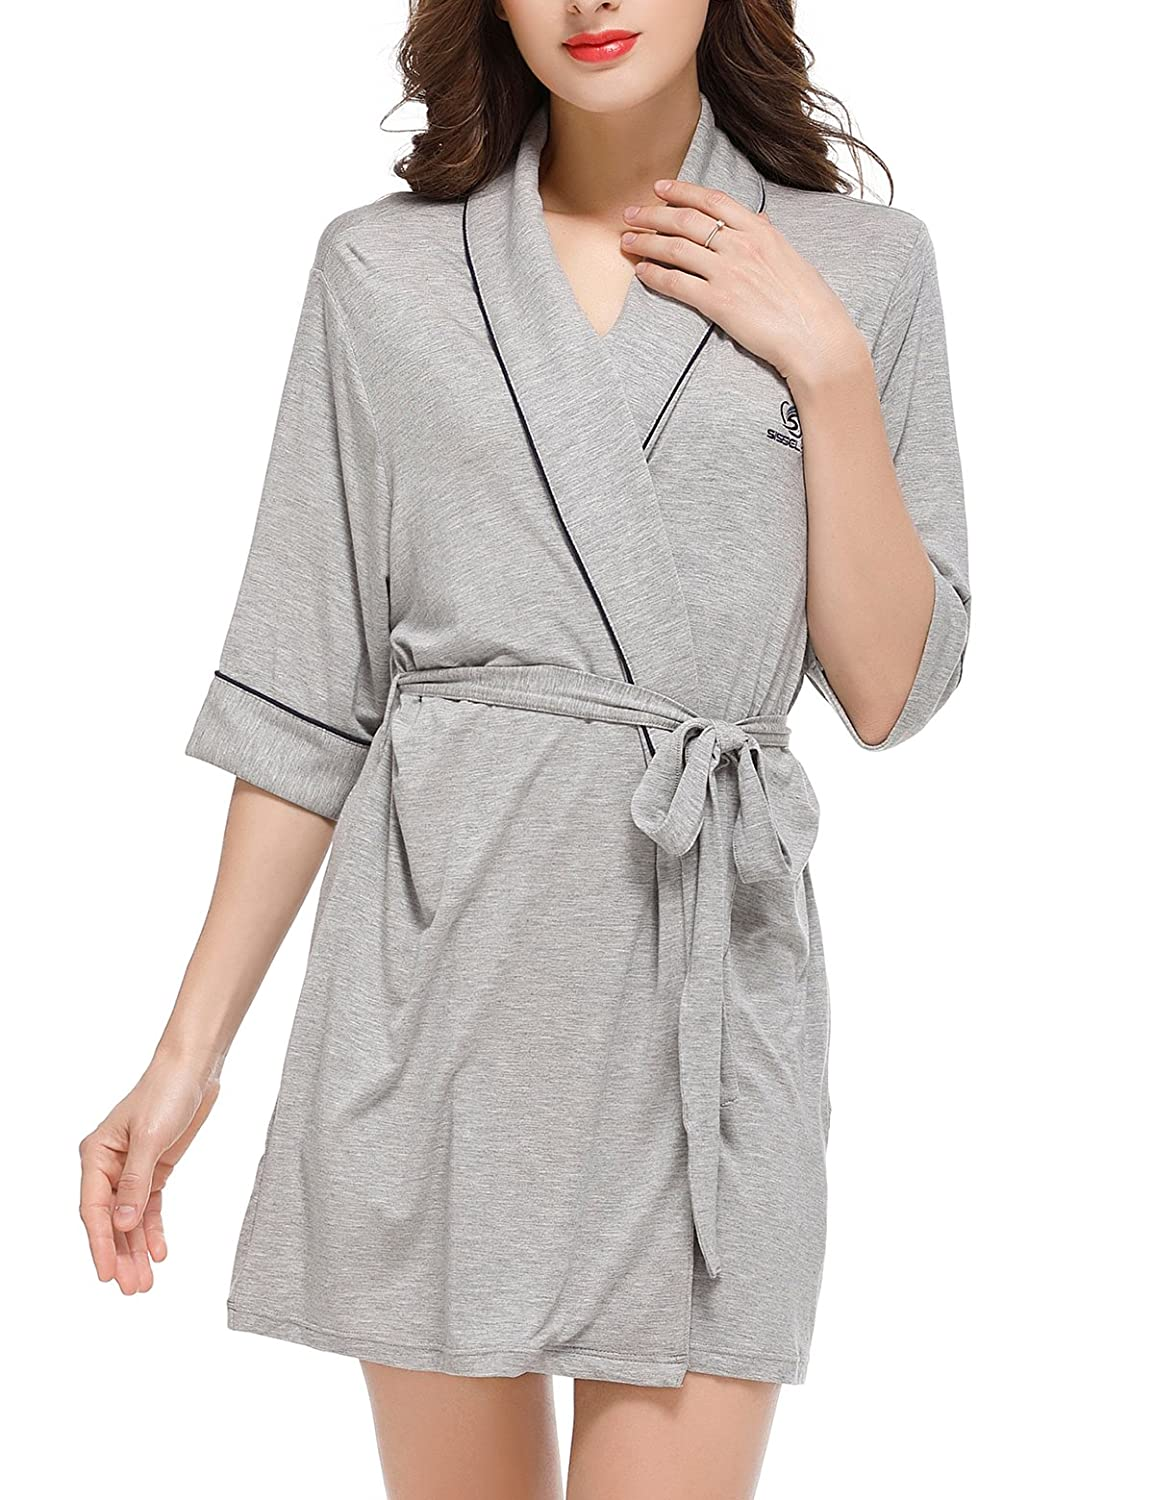 Sissely Robes for Women Women's Bathrobe Night-Robe Sleepwear Pajama XS-XL